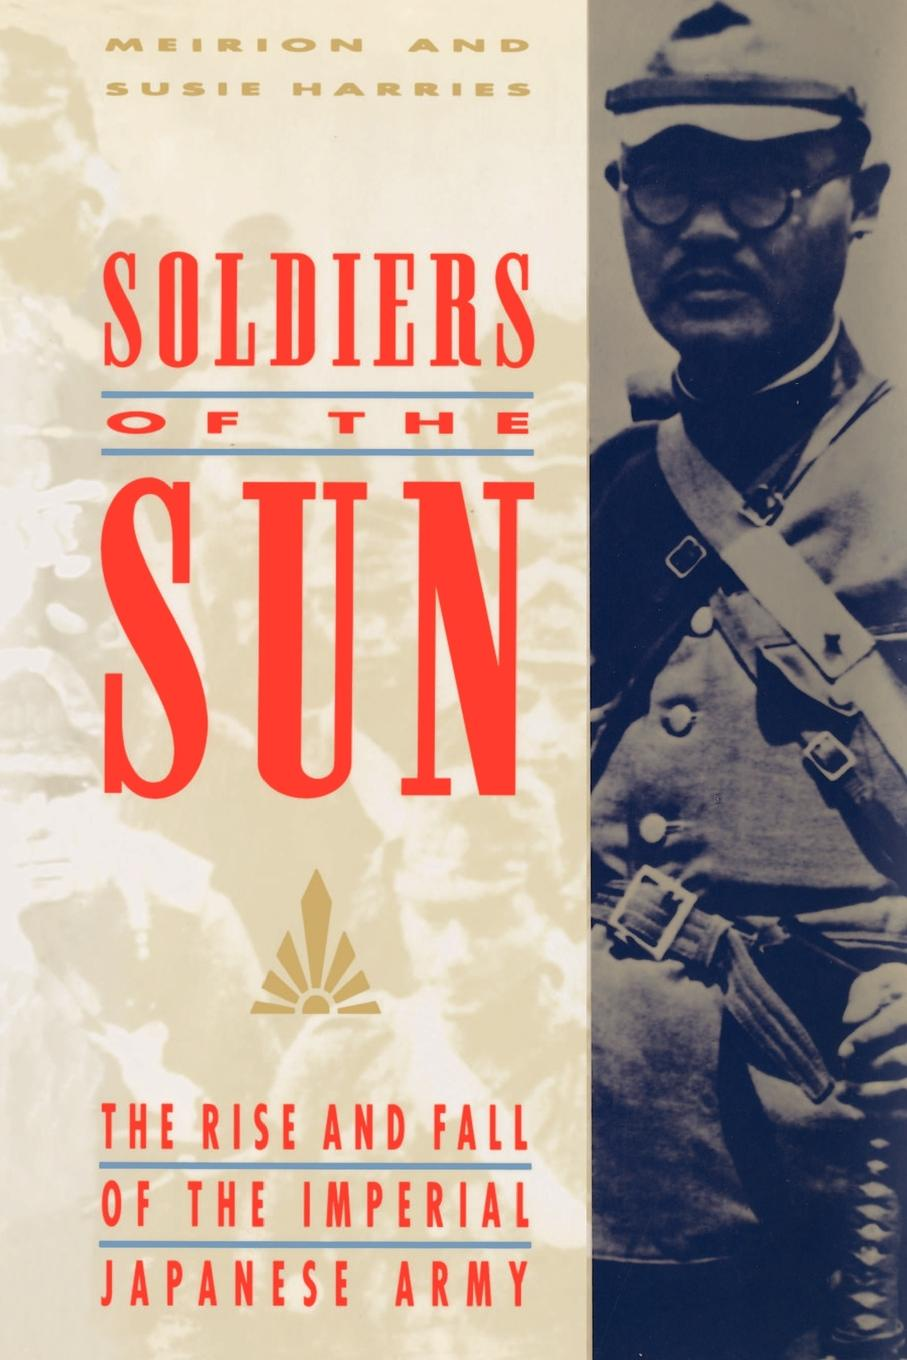 лучшая цена Meirion Harries, Susie Harries, Susie Harris and Meirion Harris Soldiers of the Sun. The Rise and Fall of the Imperial Japanese Army